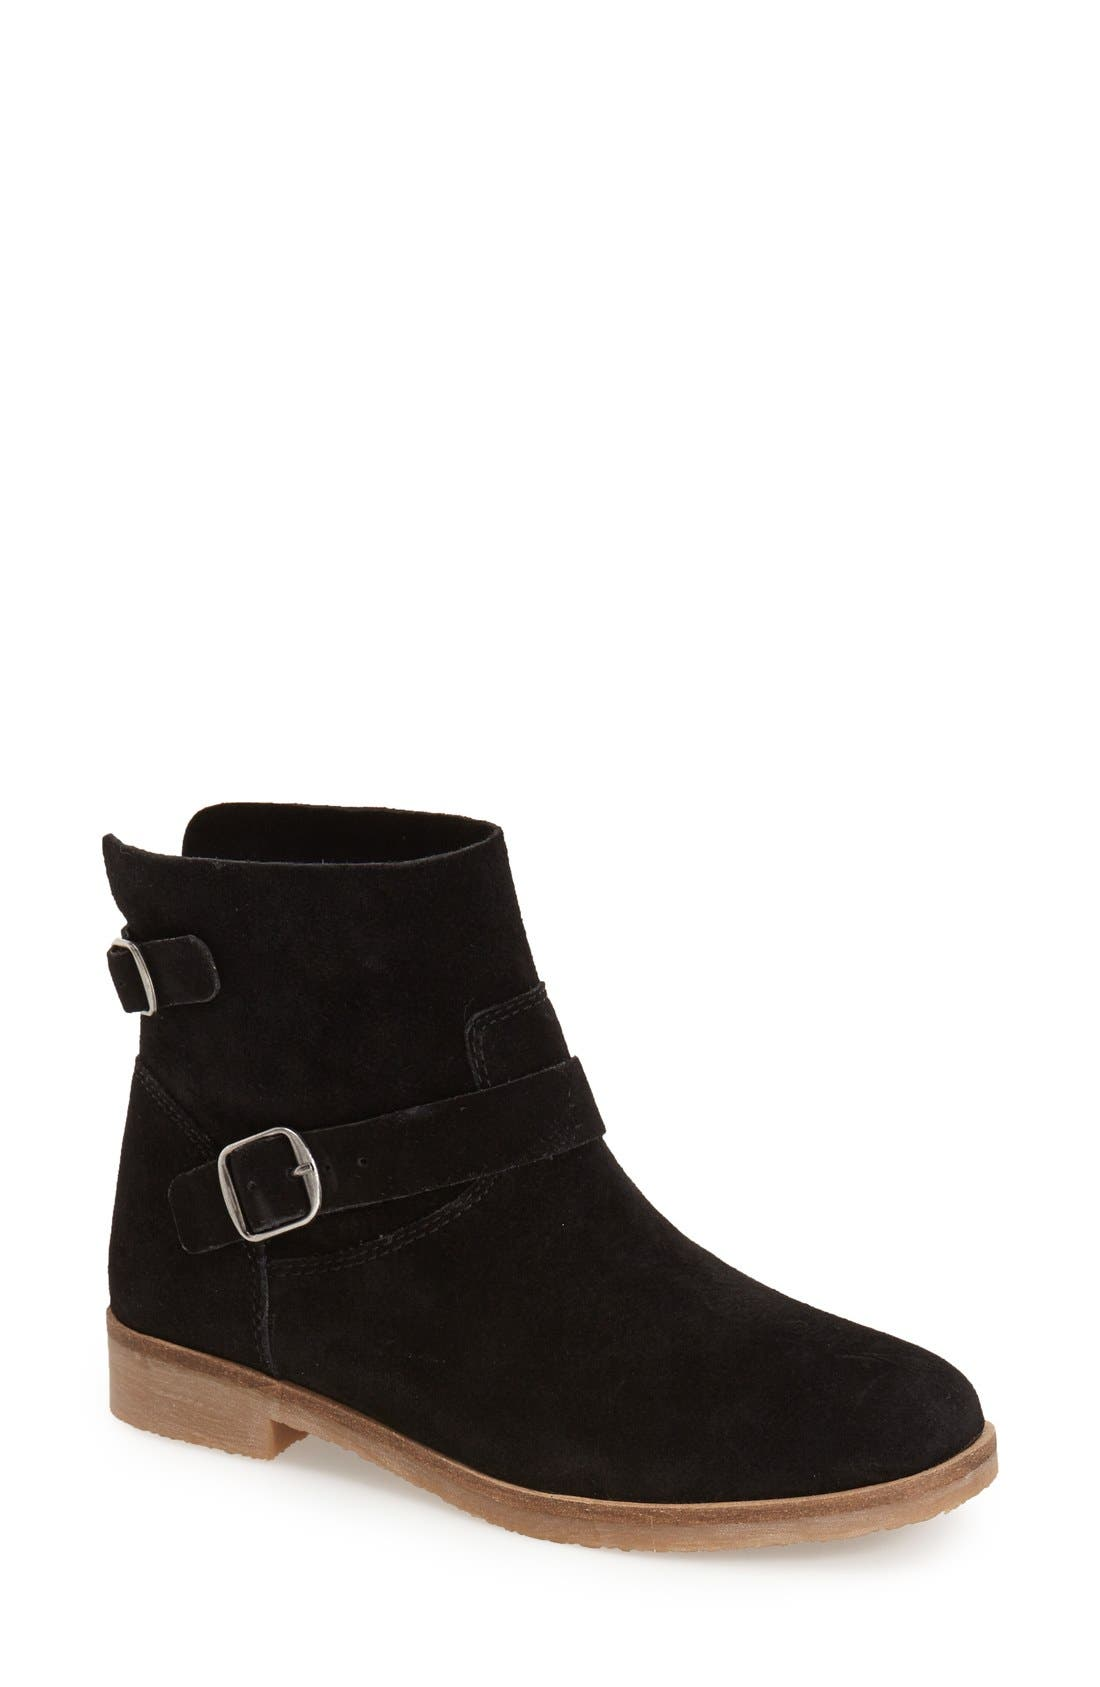 Alternate Image 1 Selected - Lucky Brand 'Galvann' Bootie (Women)